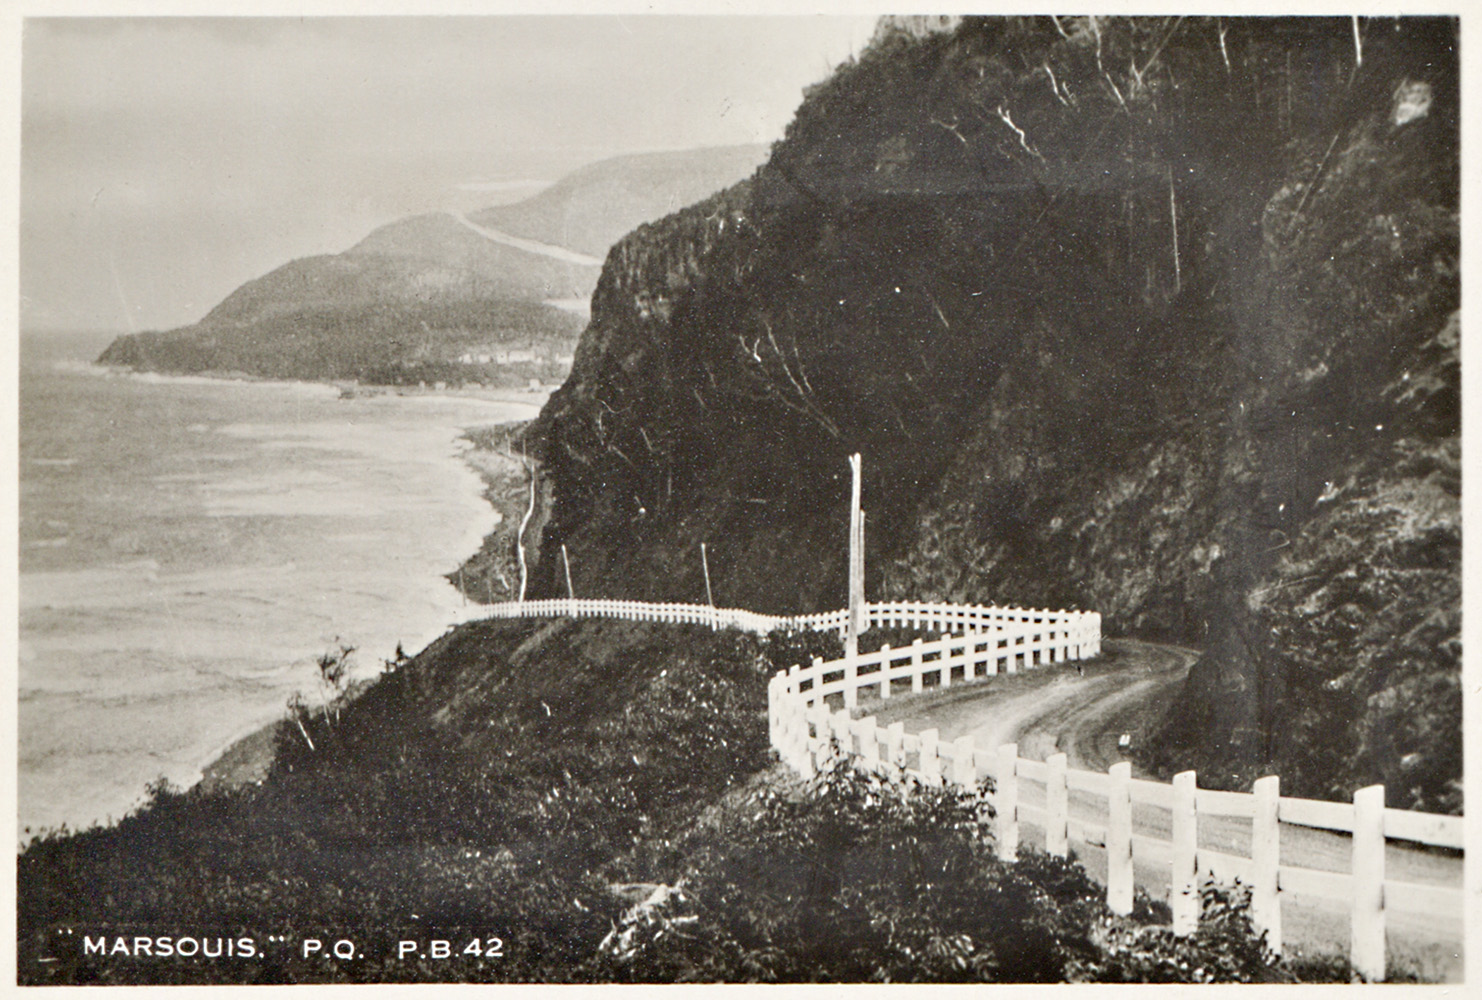 Photograph showing the winding Boulevard Perron in the municipality of Marsoui. Perron Boulevard crosses a rocky cape and is bordered by a white painted wooden fence.